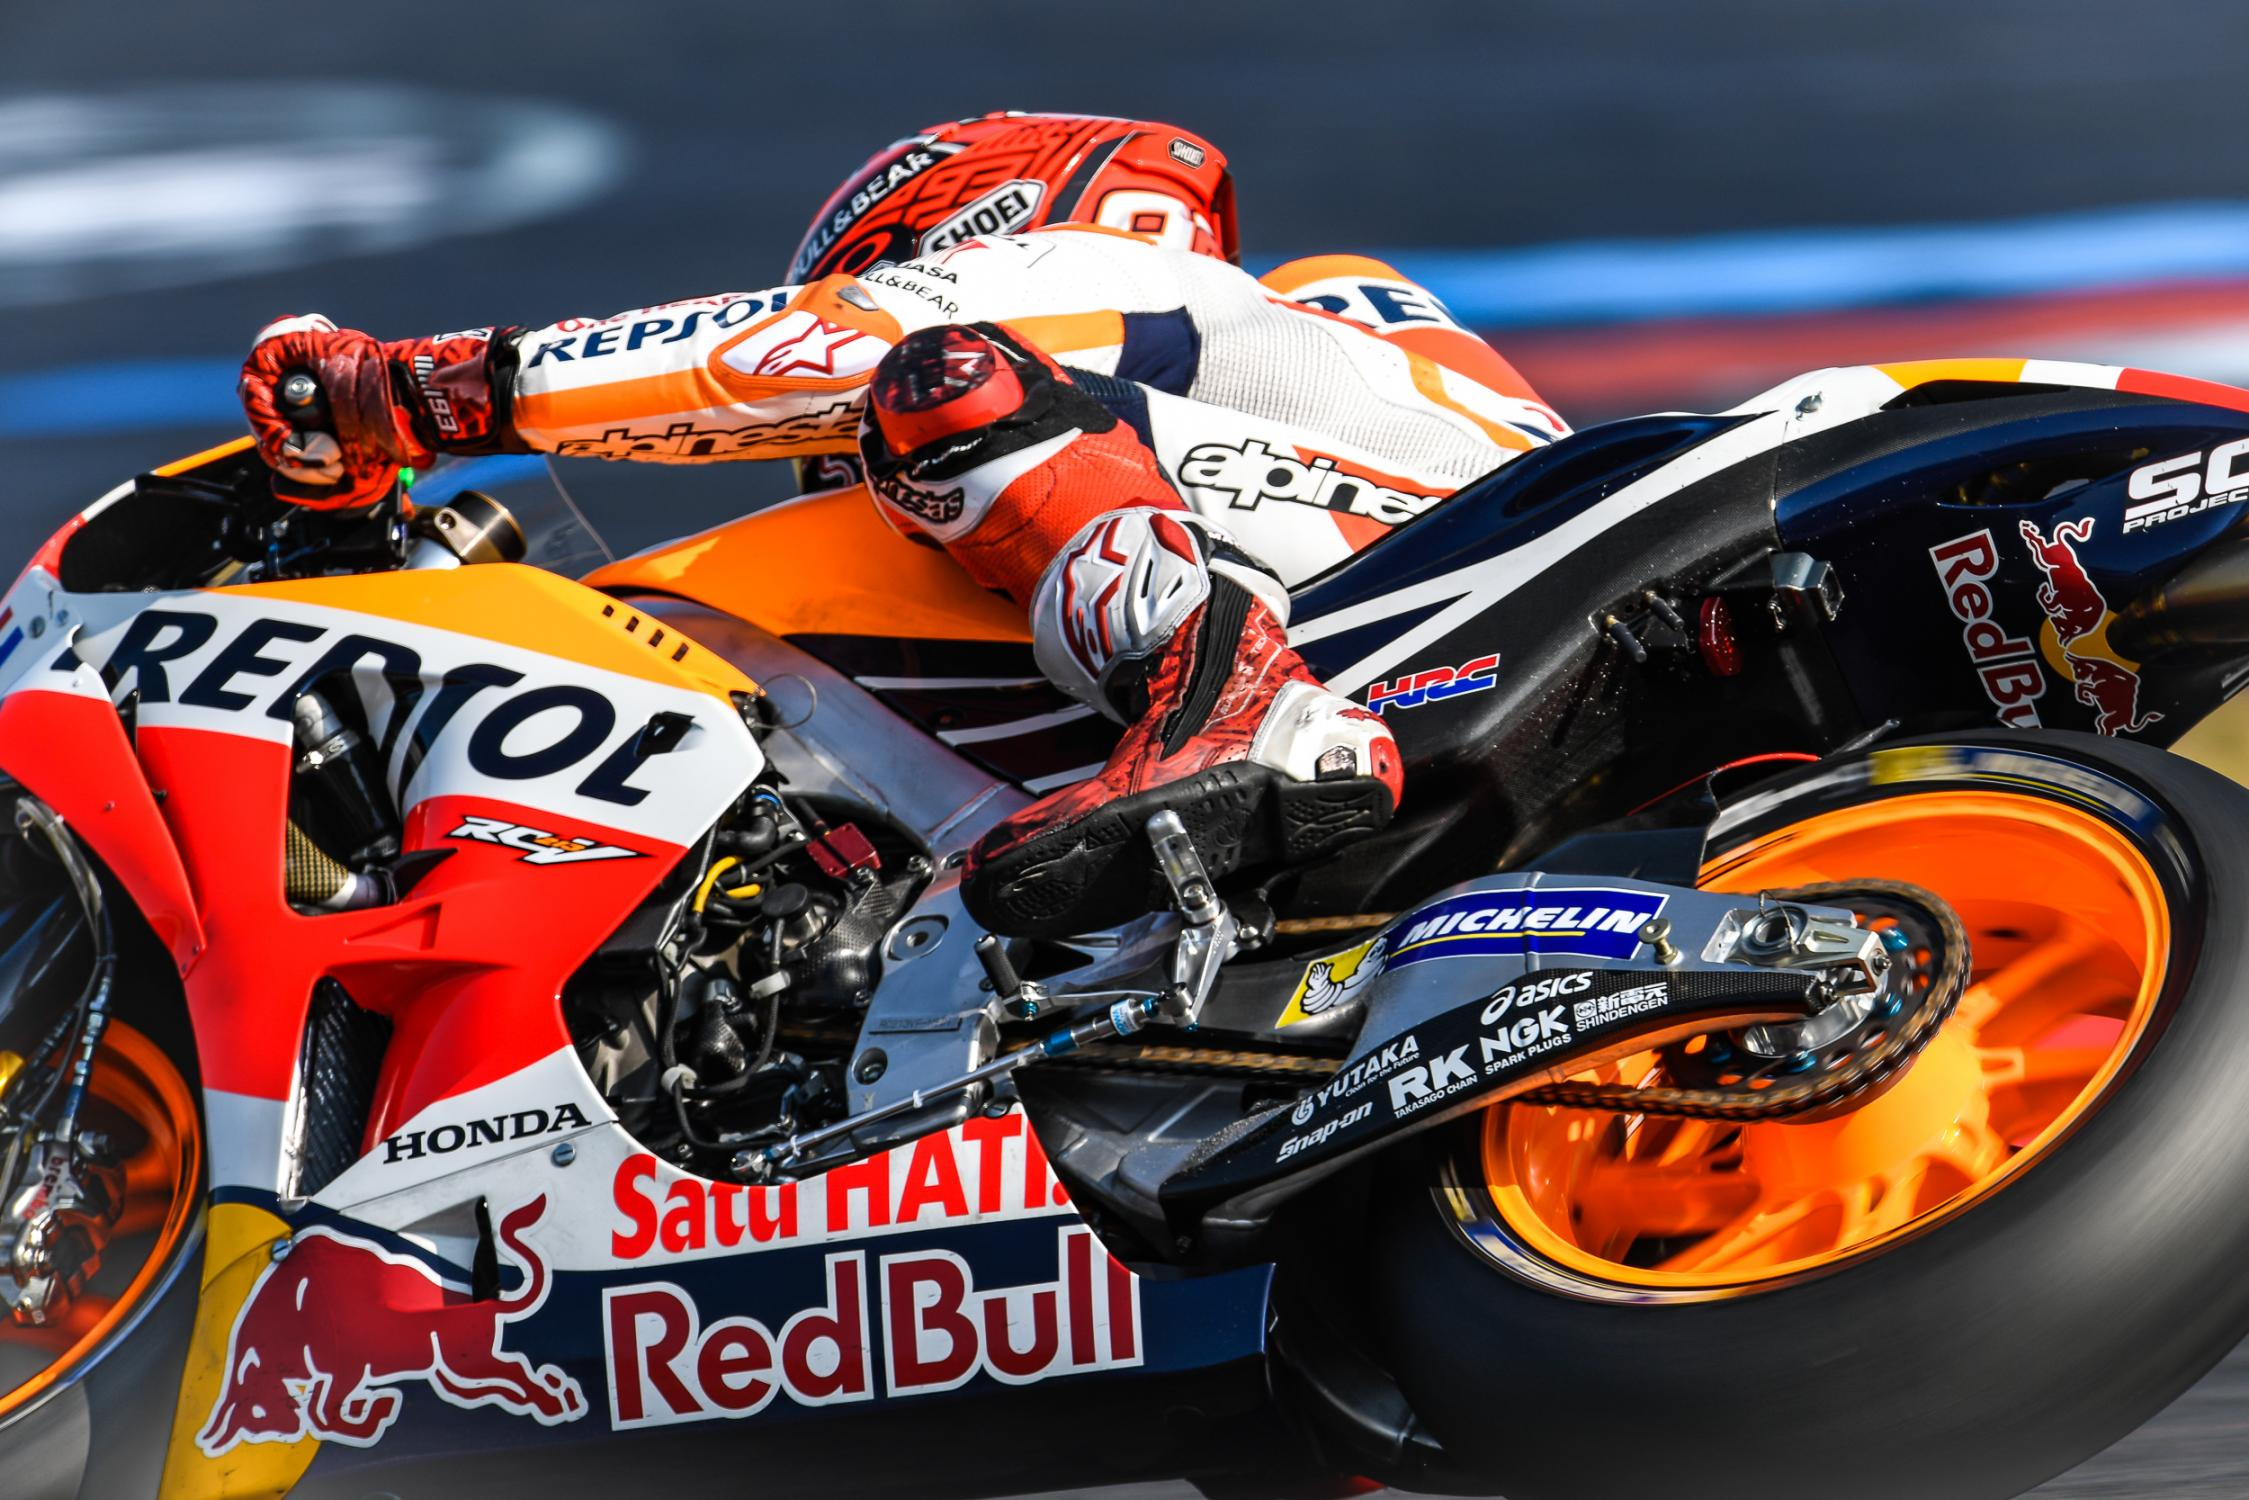 93-marc-marquez-esp_dsc6280.gallery_full_top_fullscreen.jpg